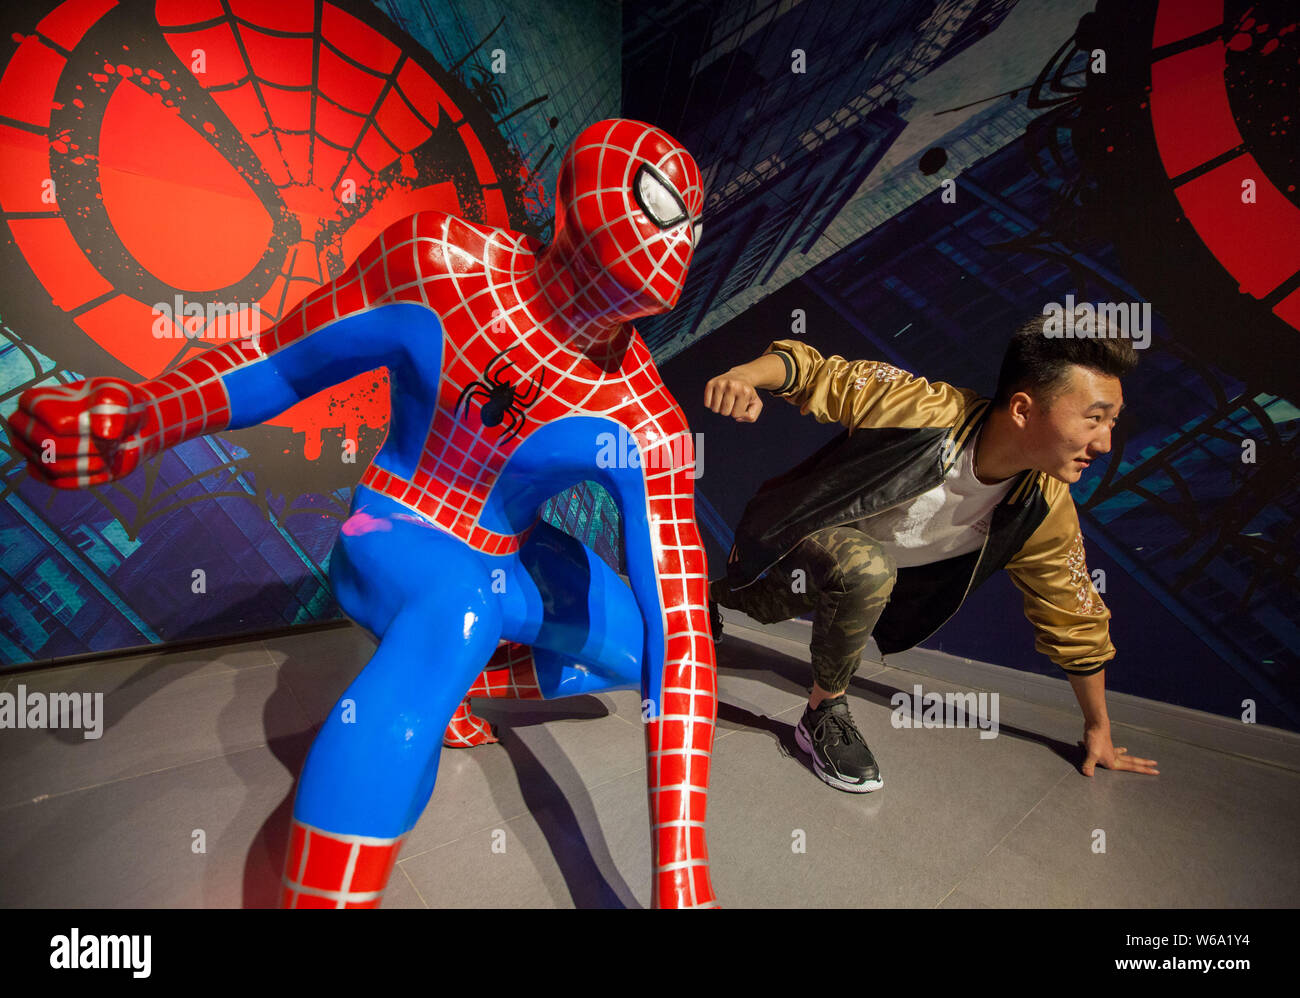 Spiderman Poses Stock Photos & Spiderman Poses Stock Images